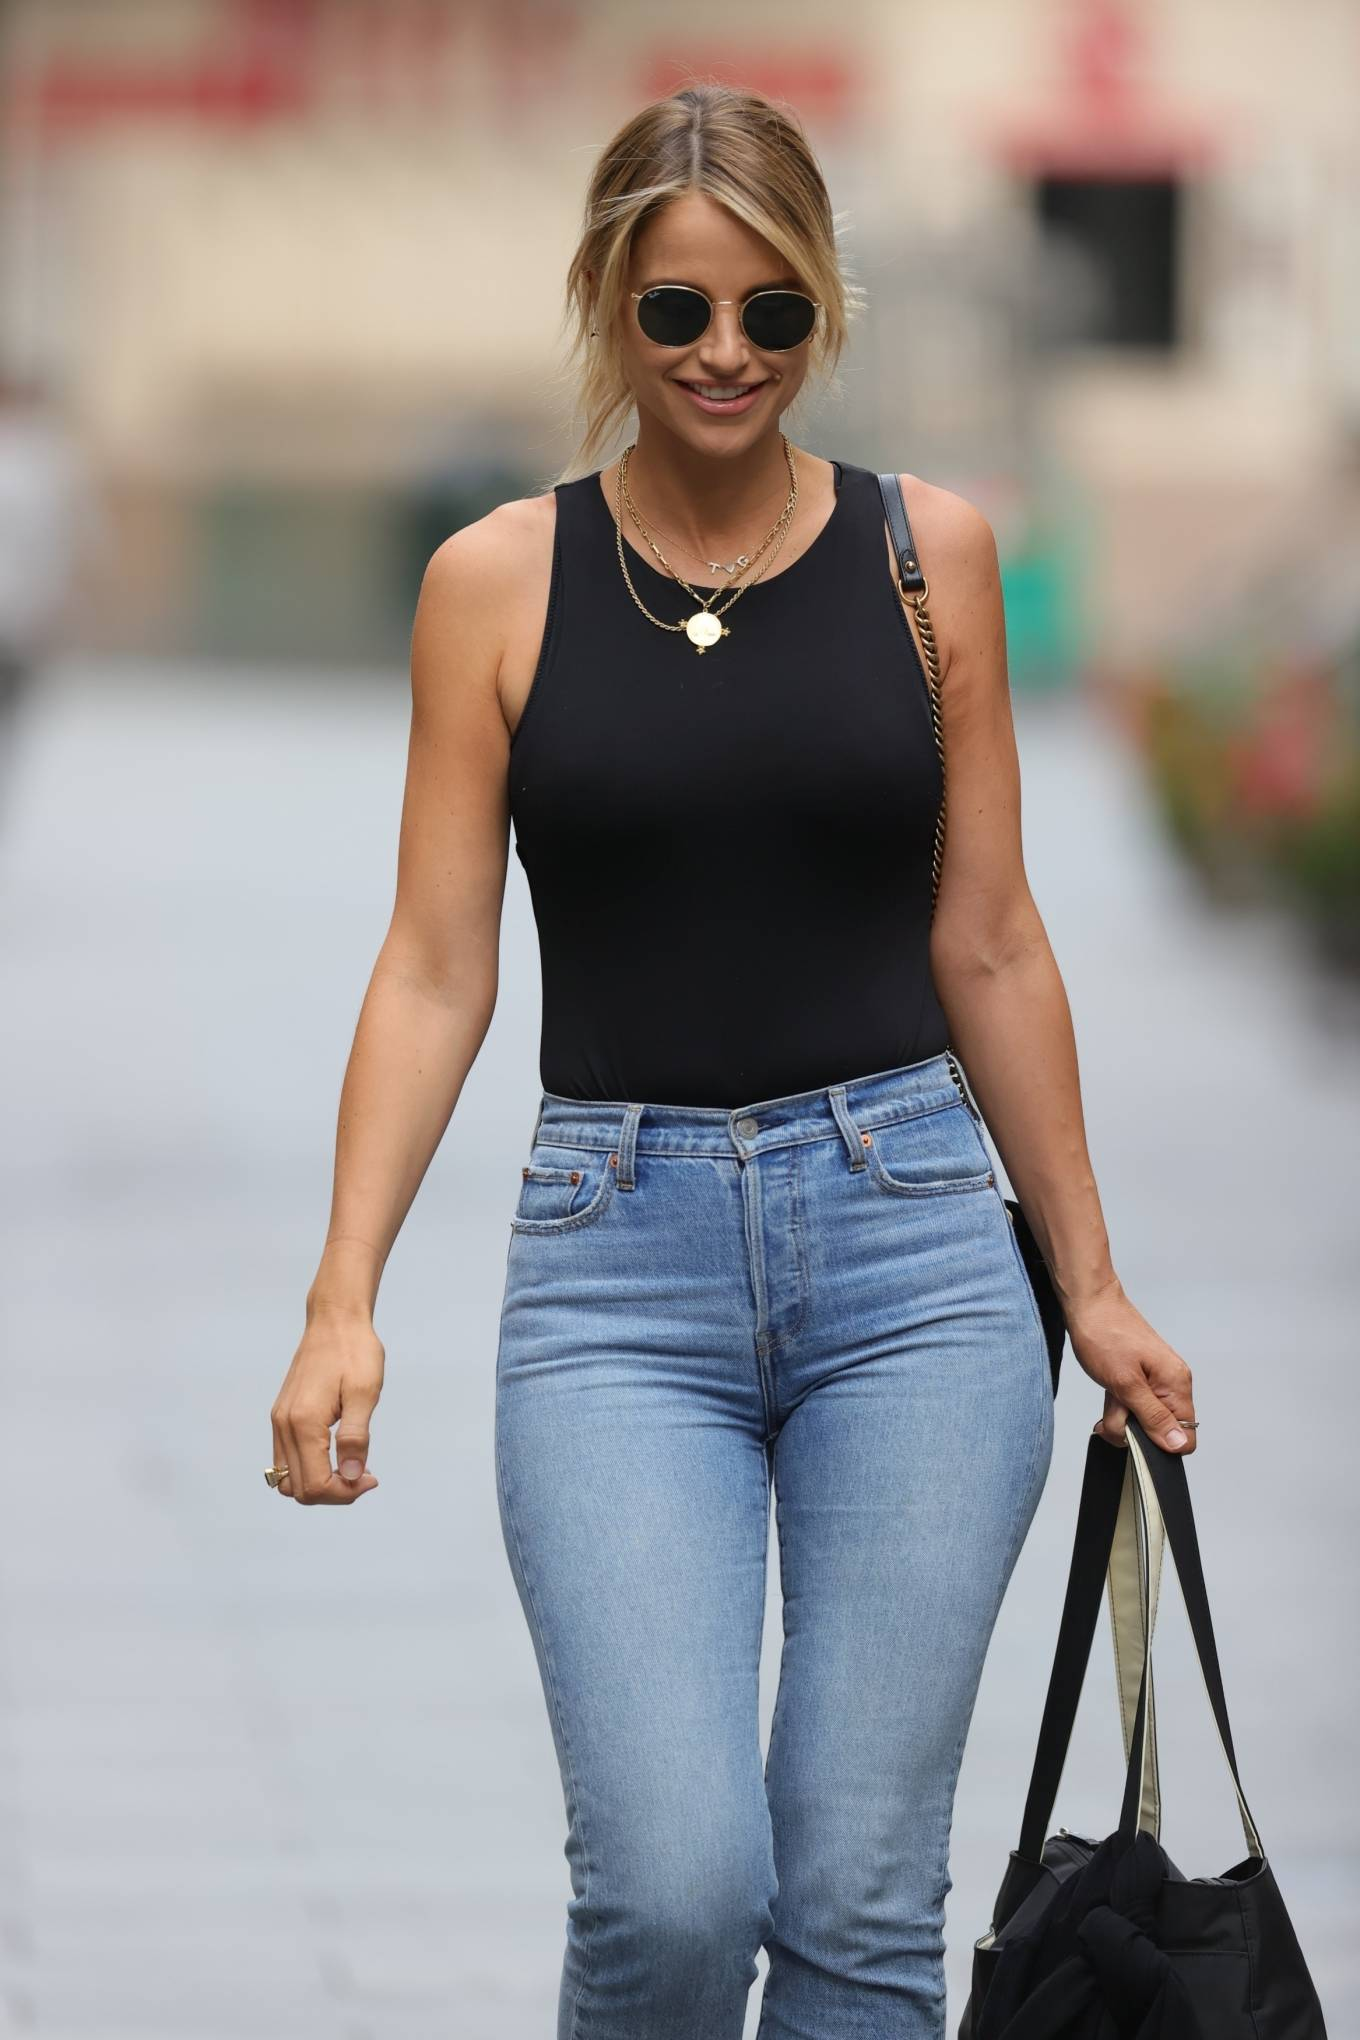 Vogue Williams - In tight denim at Heart radio show in London